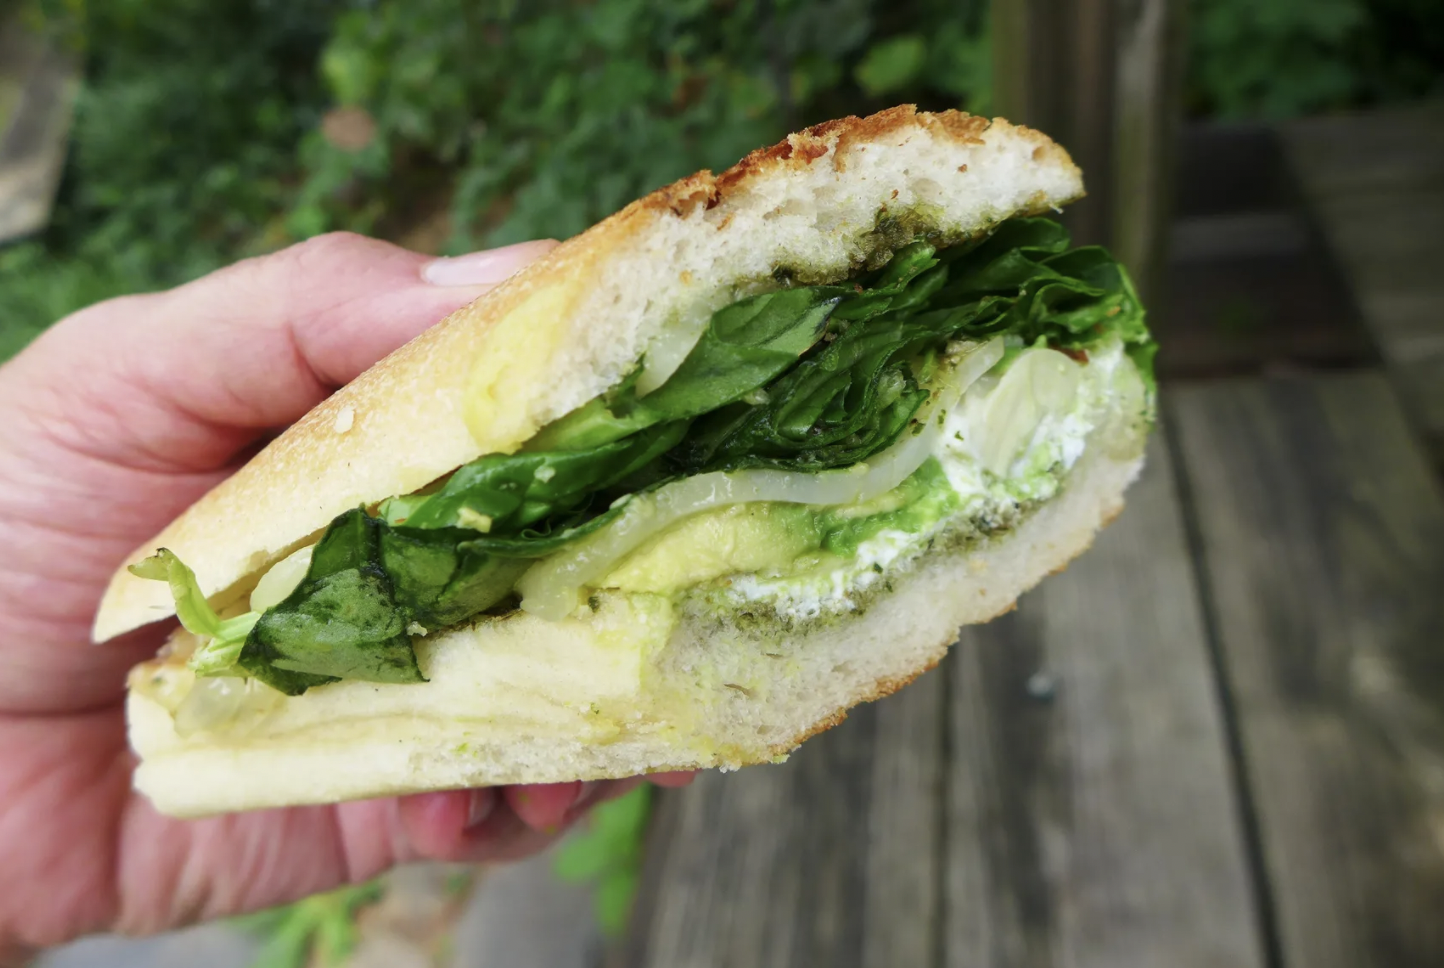 """The """"Green Machine"""" sandwich at Barnyard Cheese Shop is held in-hand. Inside there's pesto, artichokes, goat cheese, spinach, and cheddar on a roll."""